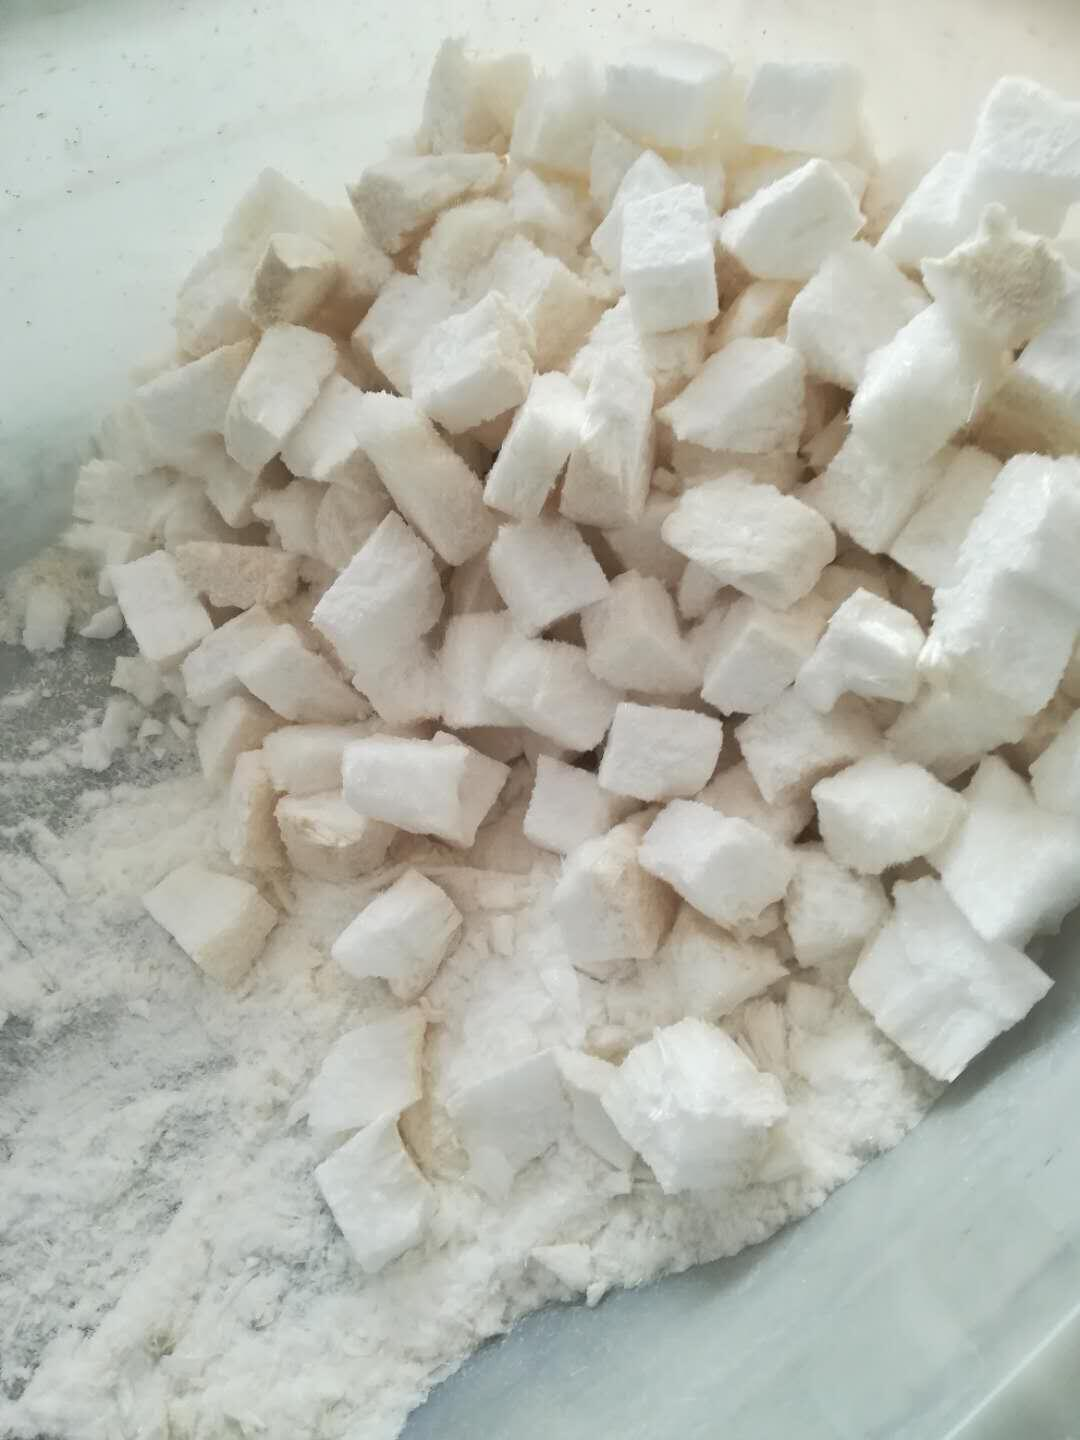 Online Buy HEP hep Research Chemical Stimulant Powder or crystal